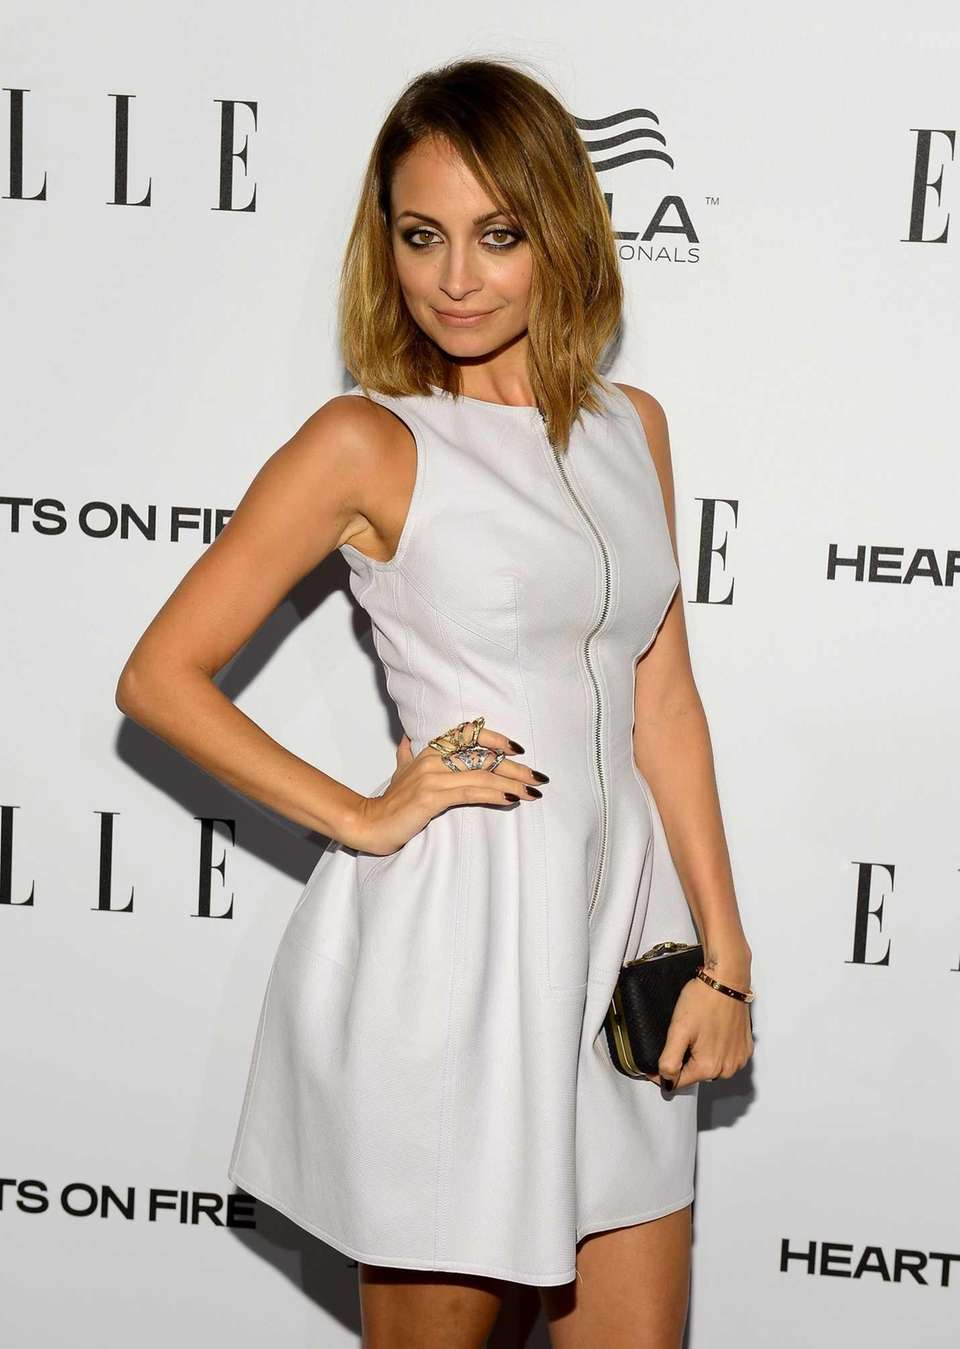 Nicole Richie was born on Sept. 21, 1981.